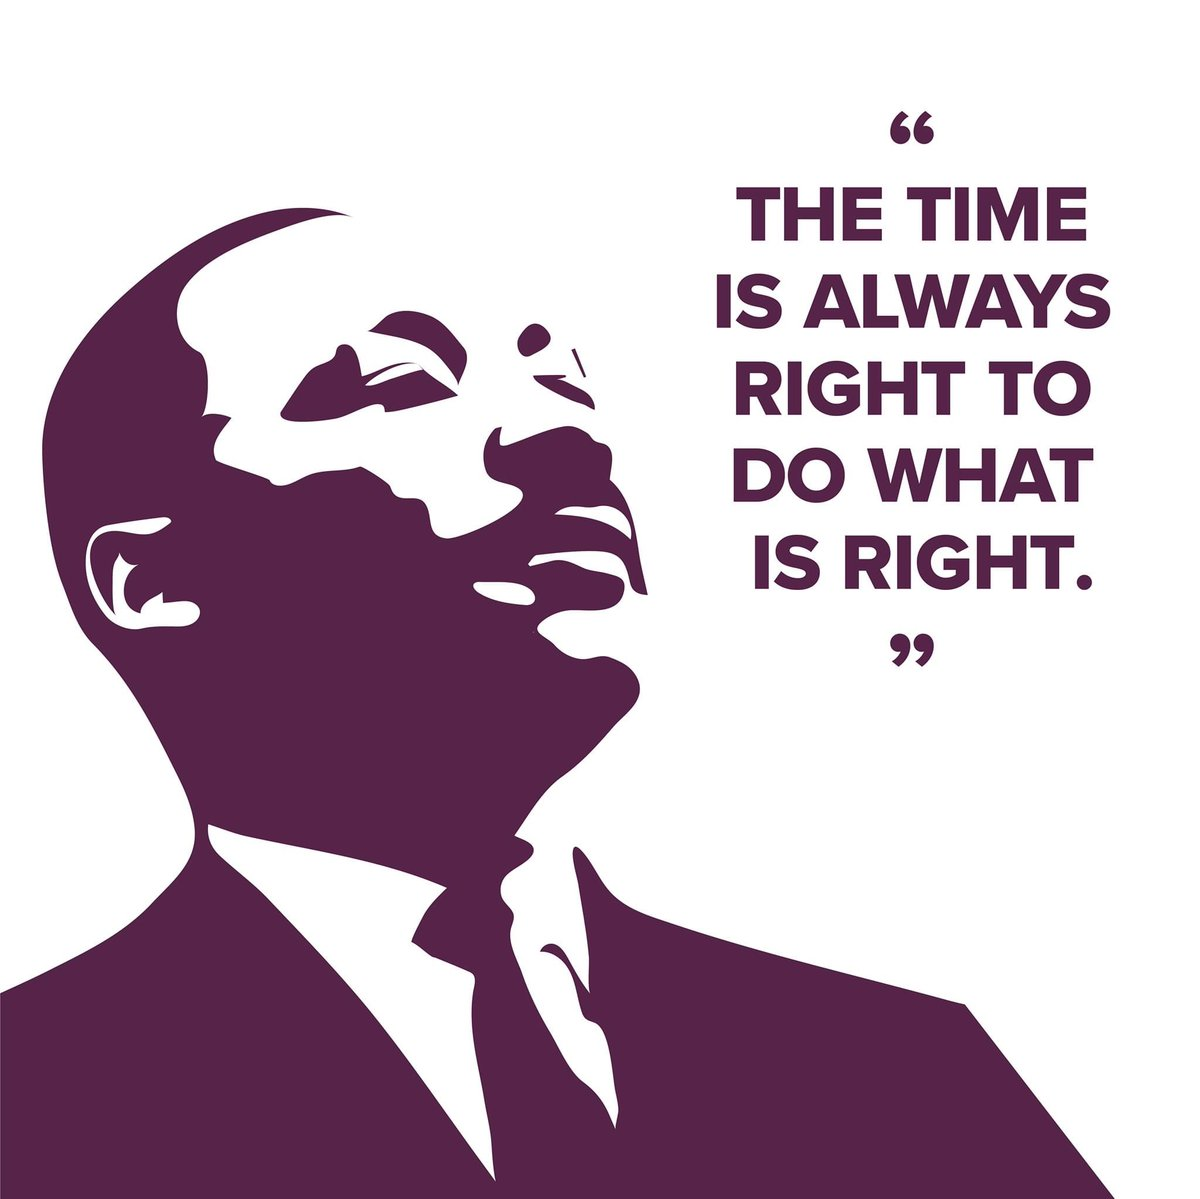 Today we take time to reflect on a man, a movement, and a moment. Today we reflect on the life of Martin Luther King Jr.  #MLKDay #MLK #MartinLutherKing #Equality #equity #civilrights